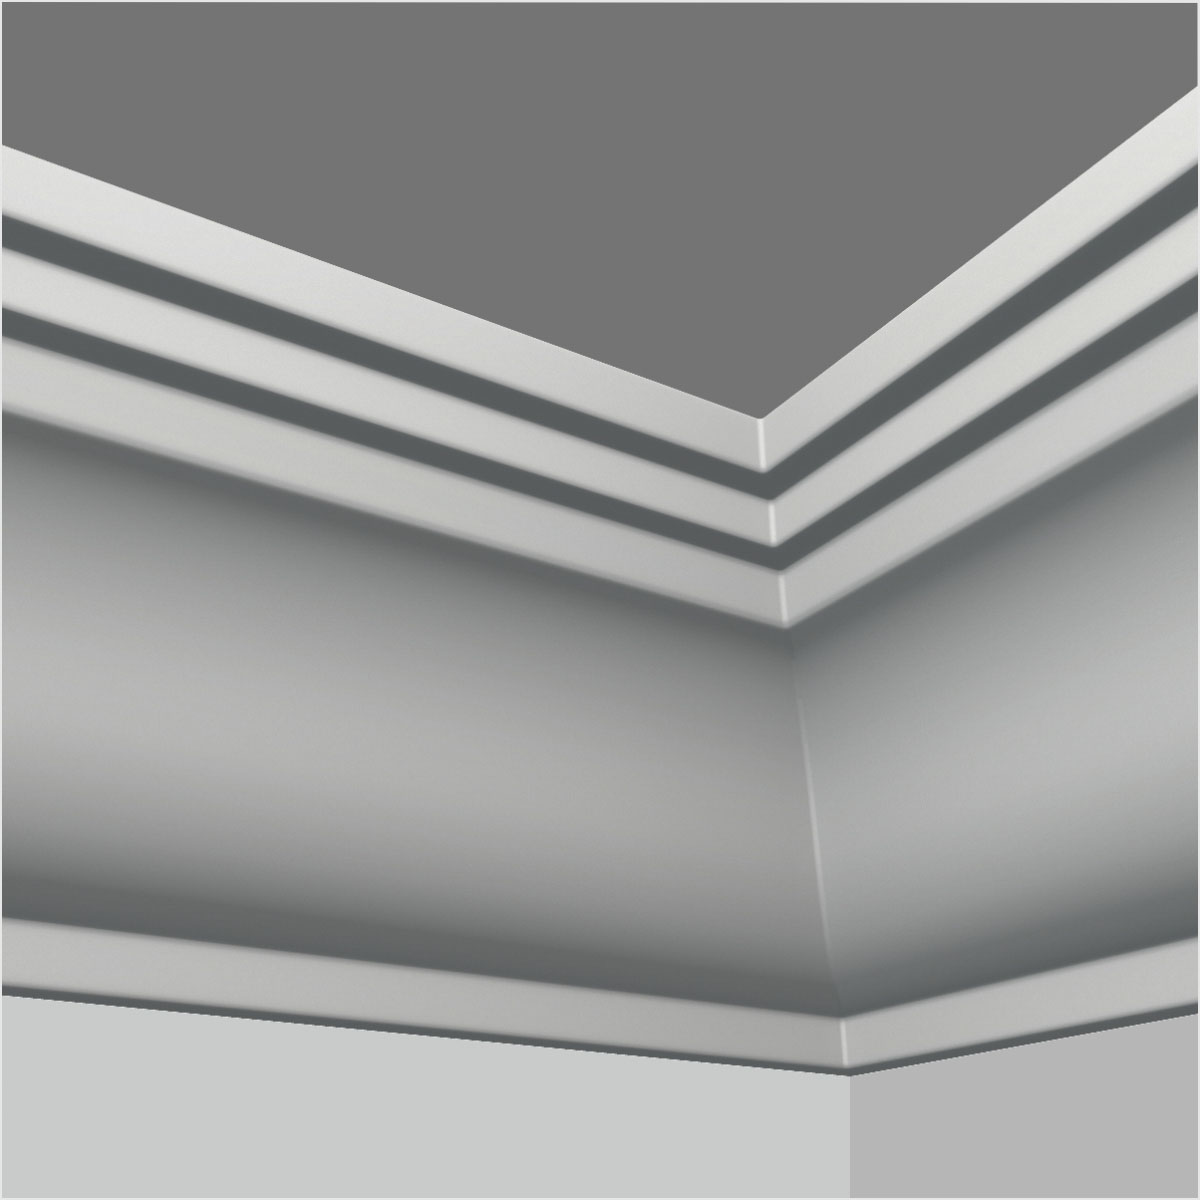 Polyurethane plain door crown moulding